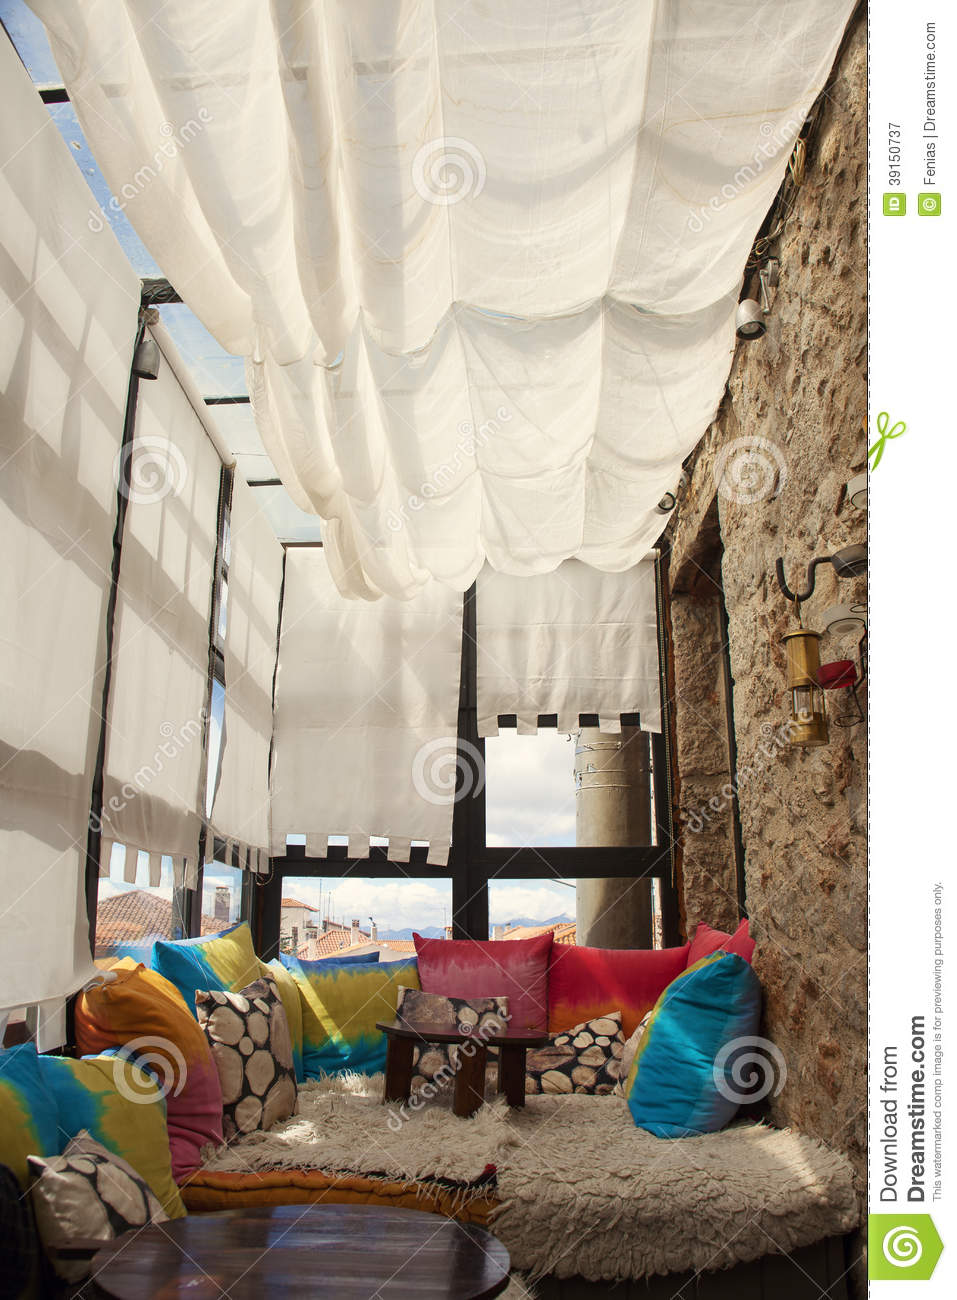 Terrace With Seats Stock Image Image Of Warm Coffe 39150737